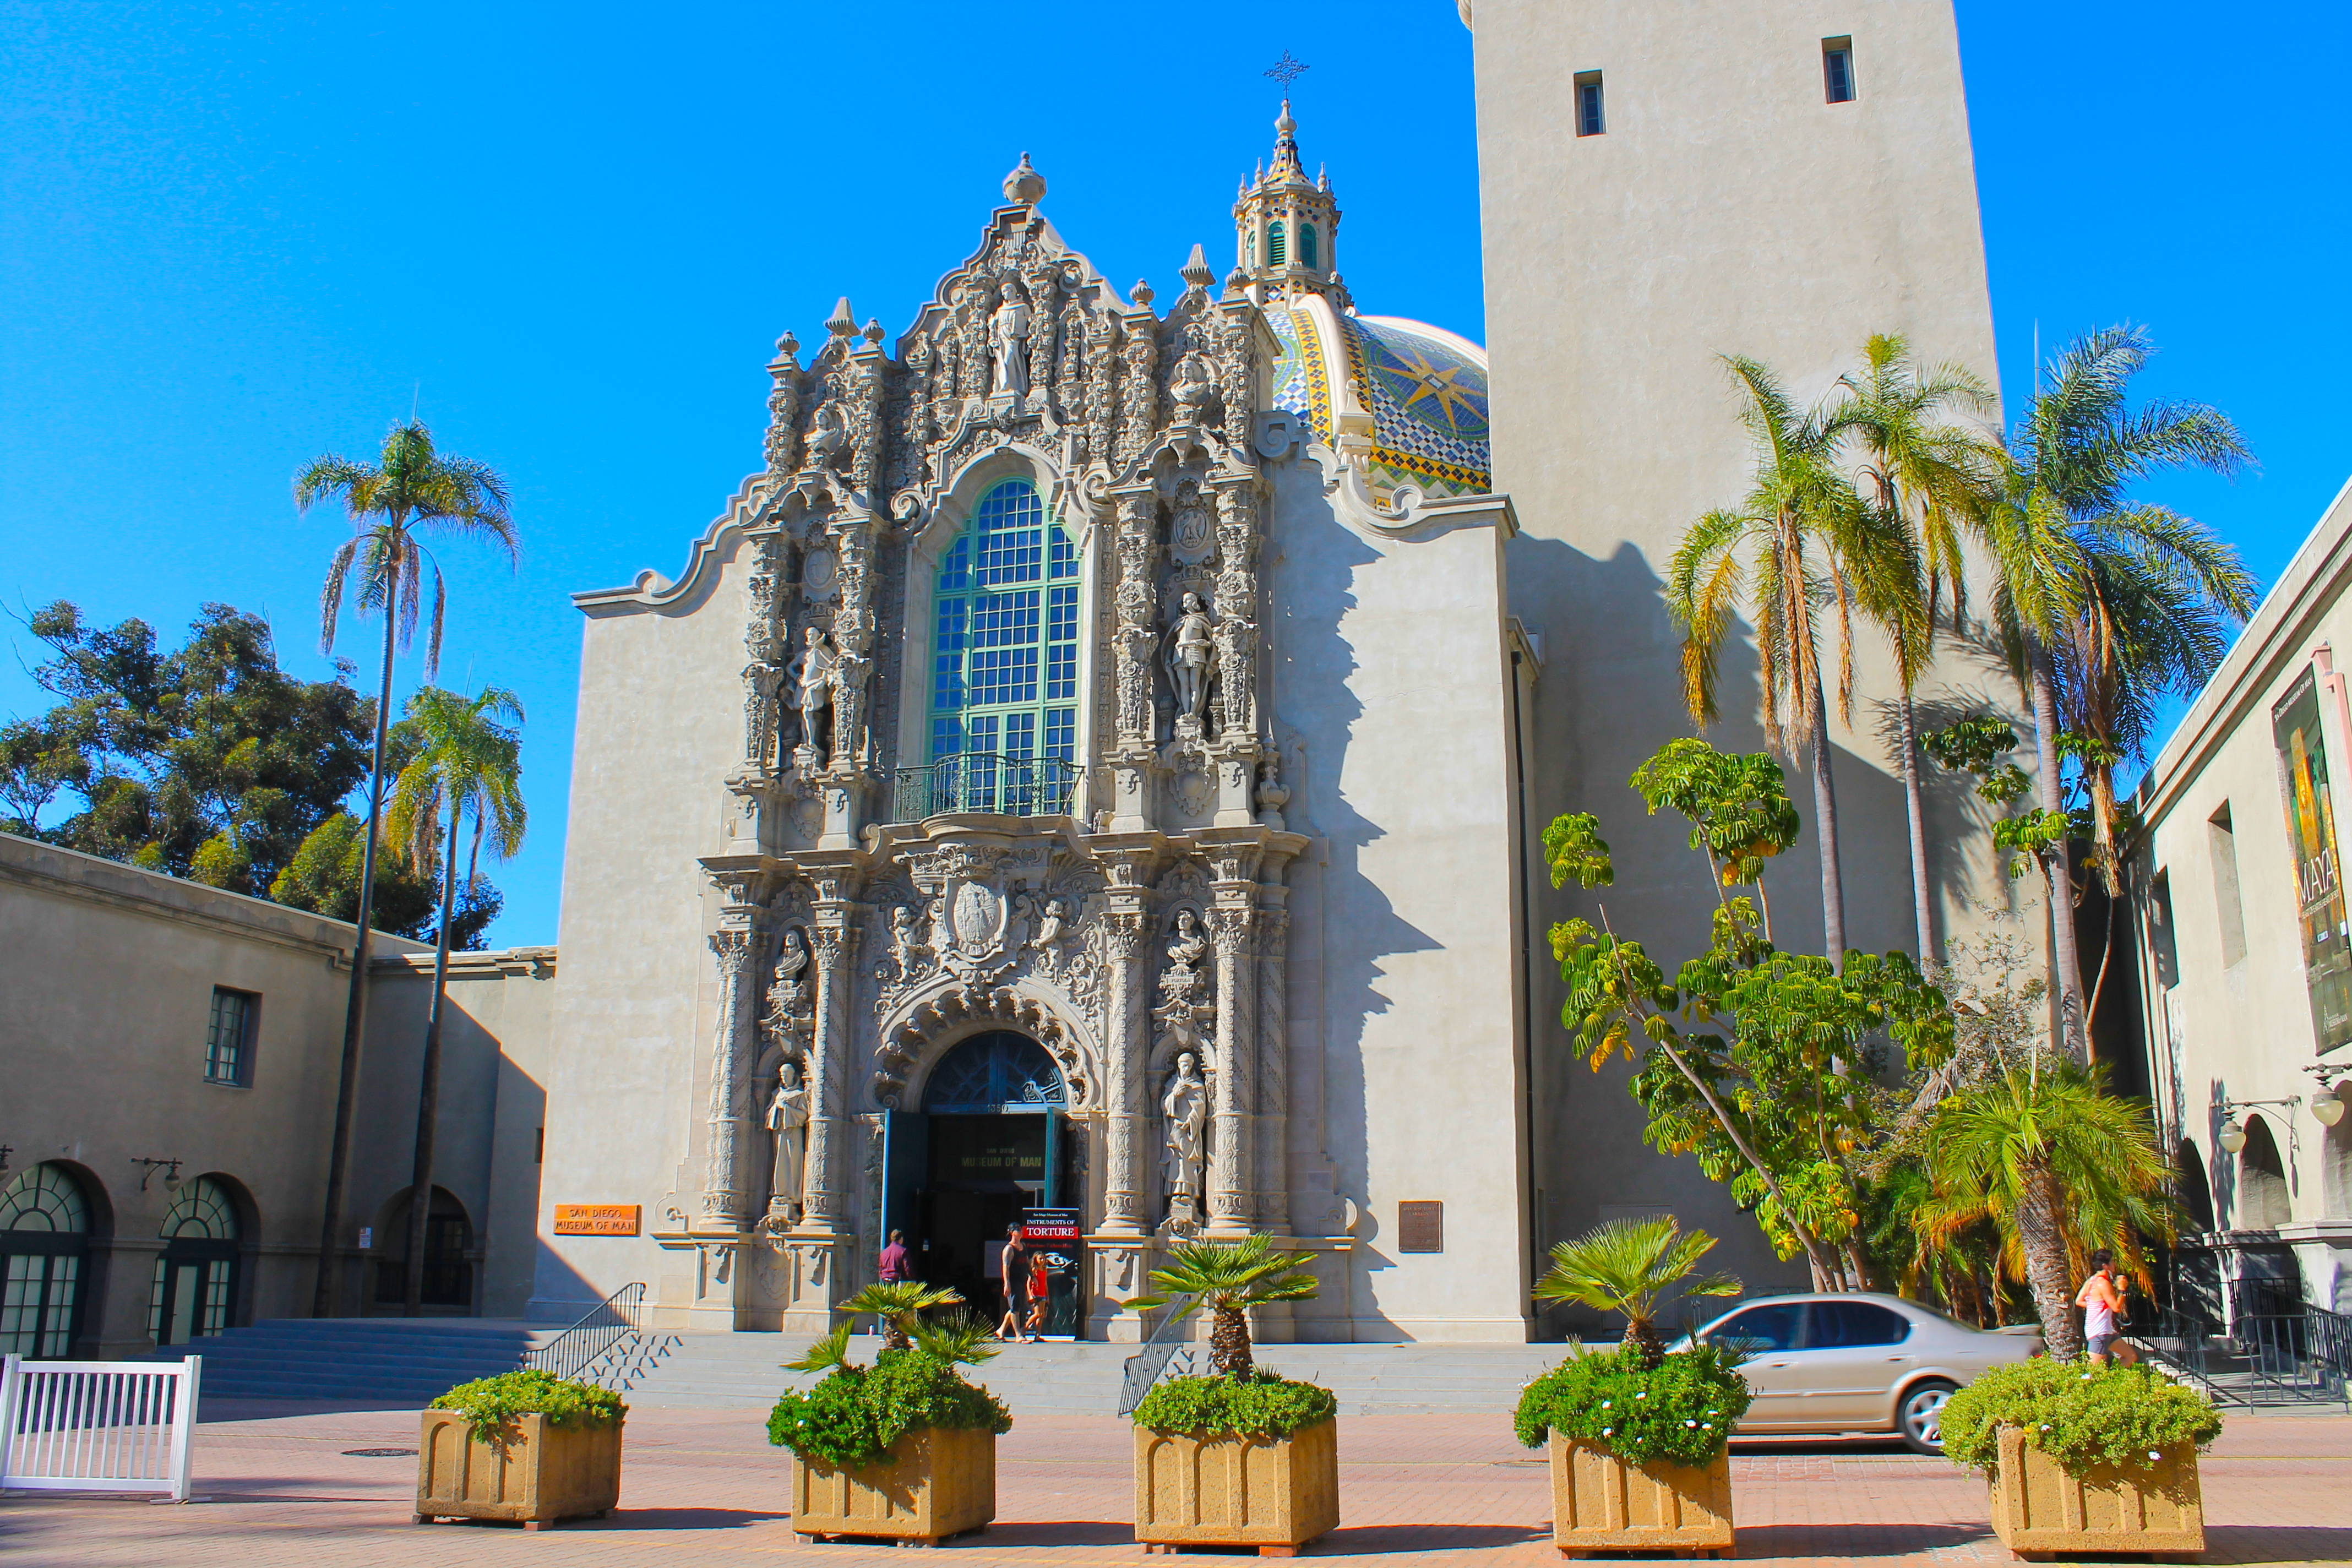 Old Town San Diego State Historic Park San Diego, balboa park san diego museum of man – One Cool Thing Every Weekend